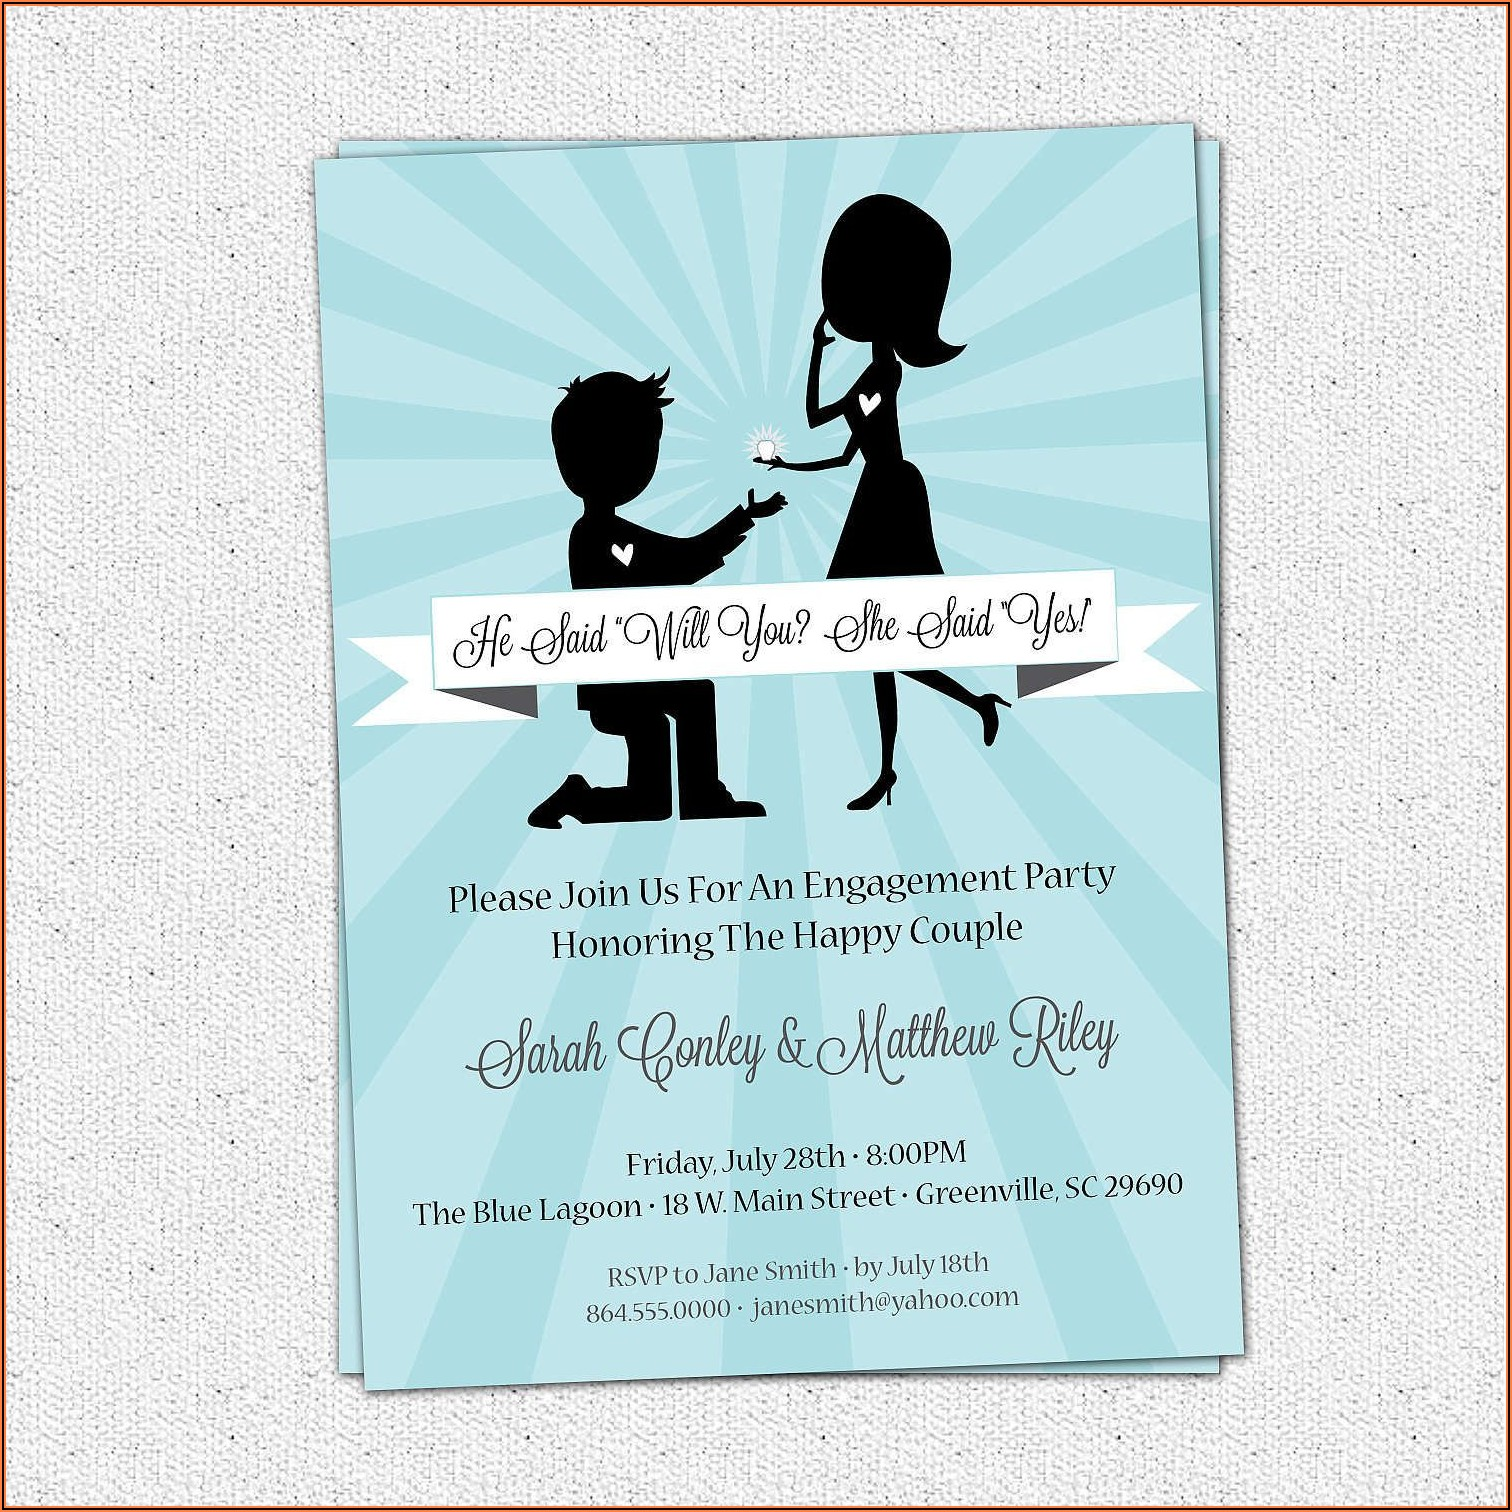 Vistaprint Wedding Invitations Reviews Uk